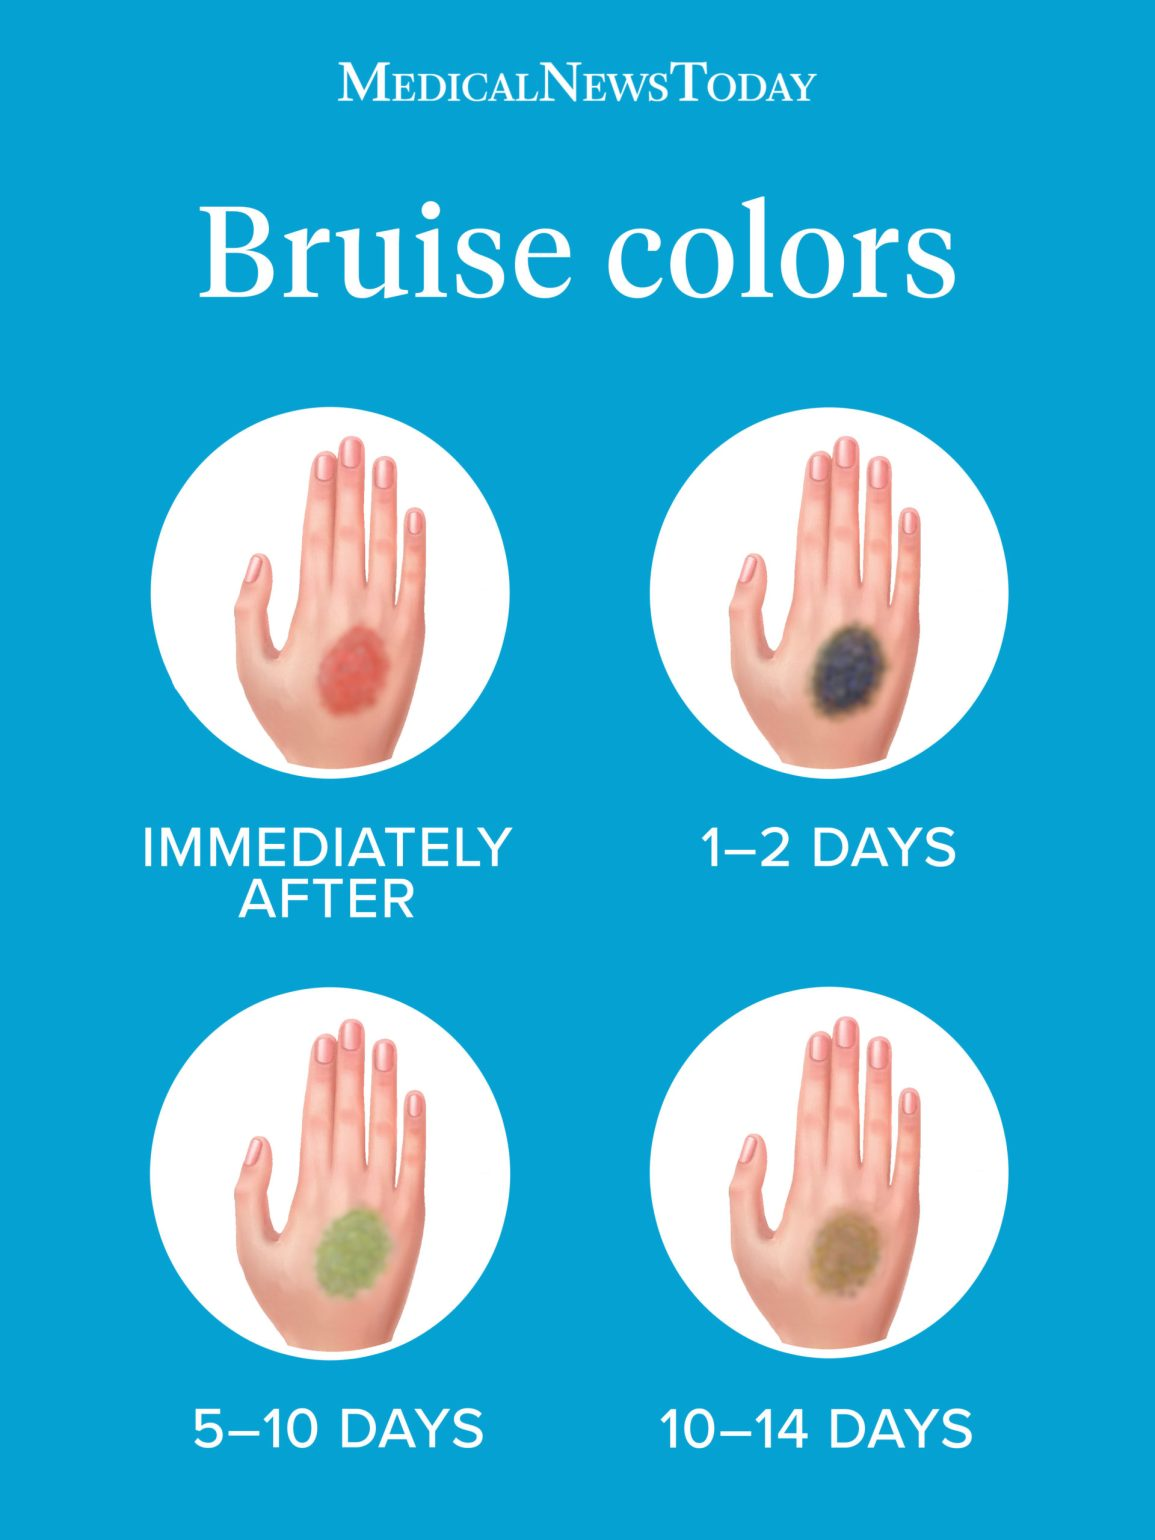 bruis colors infographic